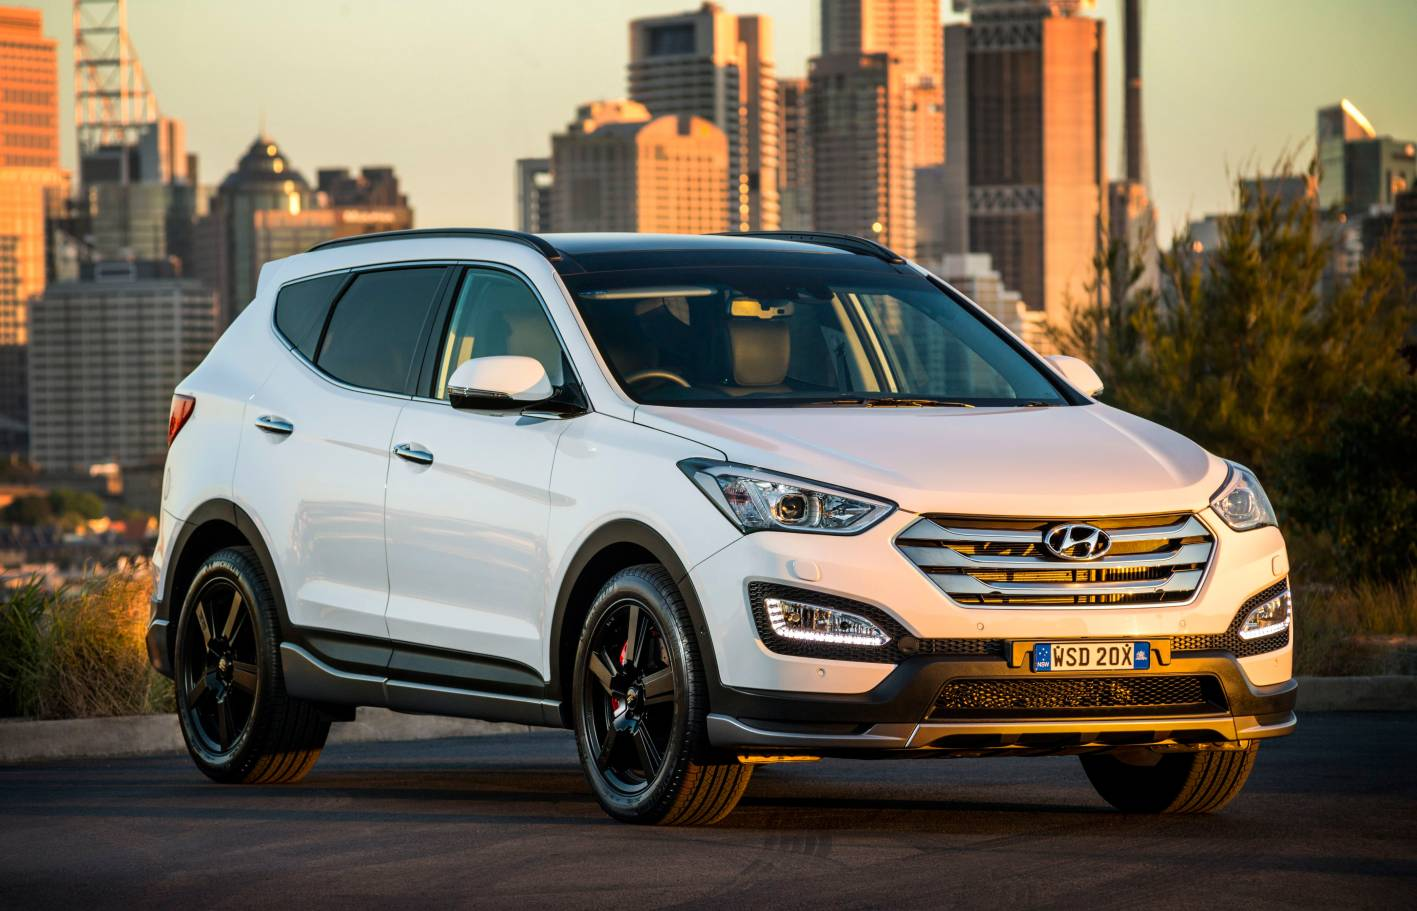 Should I Buy A Hyundai Santa Fe Elite Or A Jeep Grand Cherokee Diesel Auto Expert By John Cadogan Save Thousands On Your Next New Car